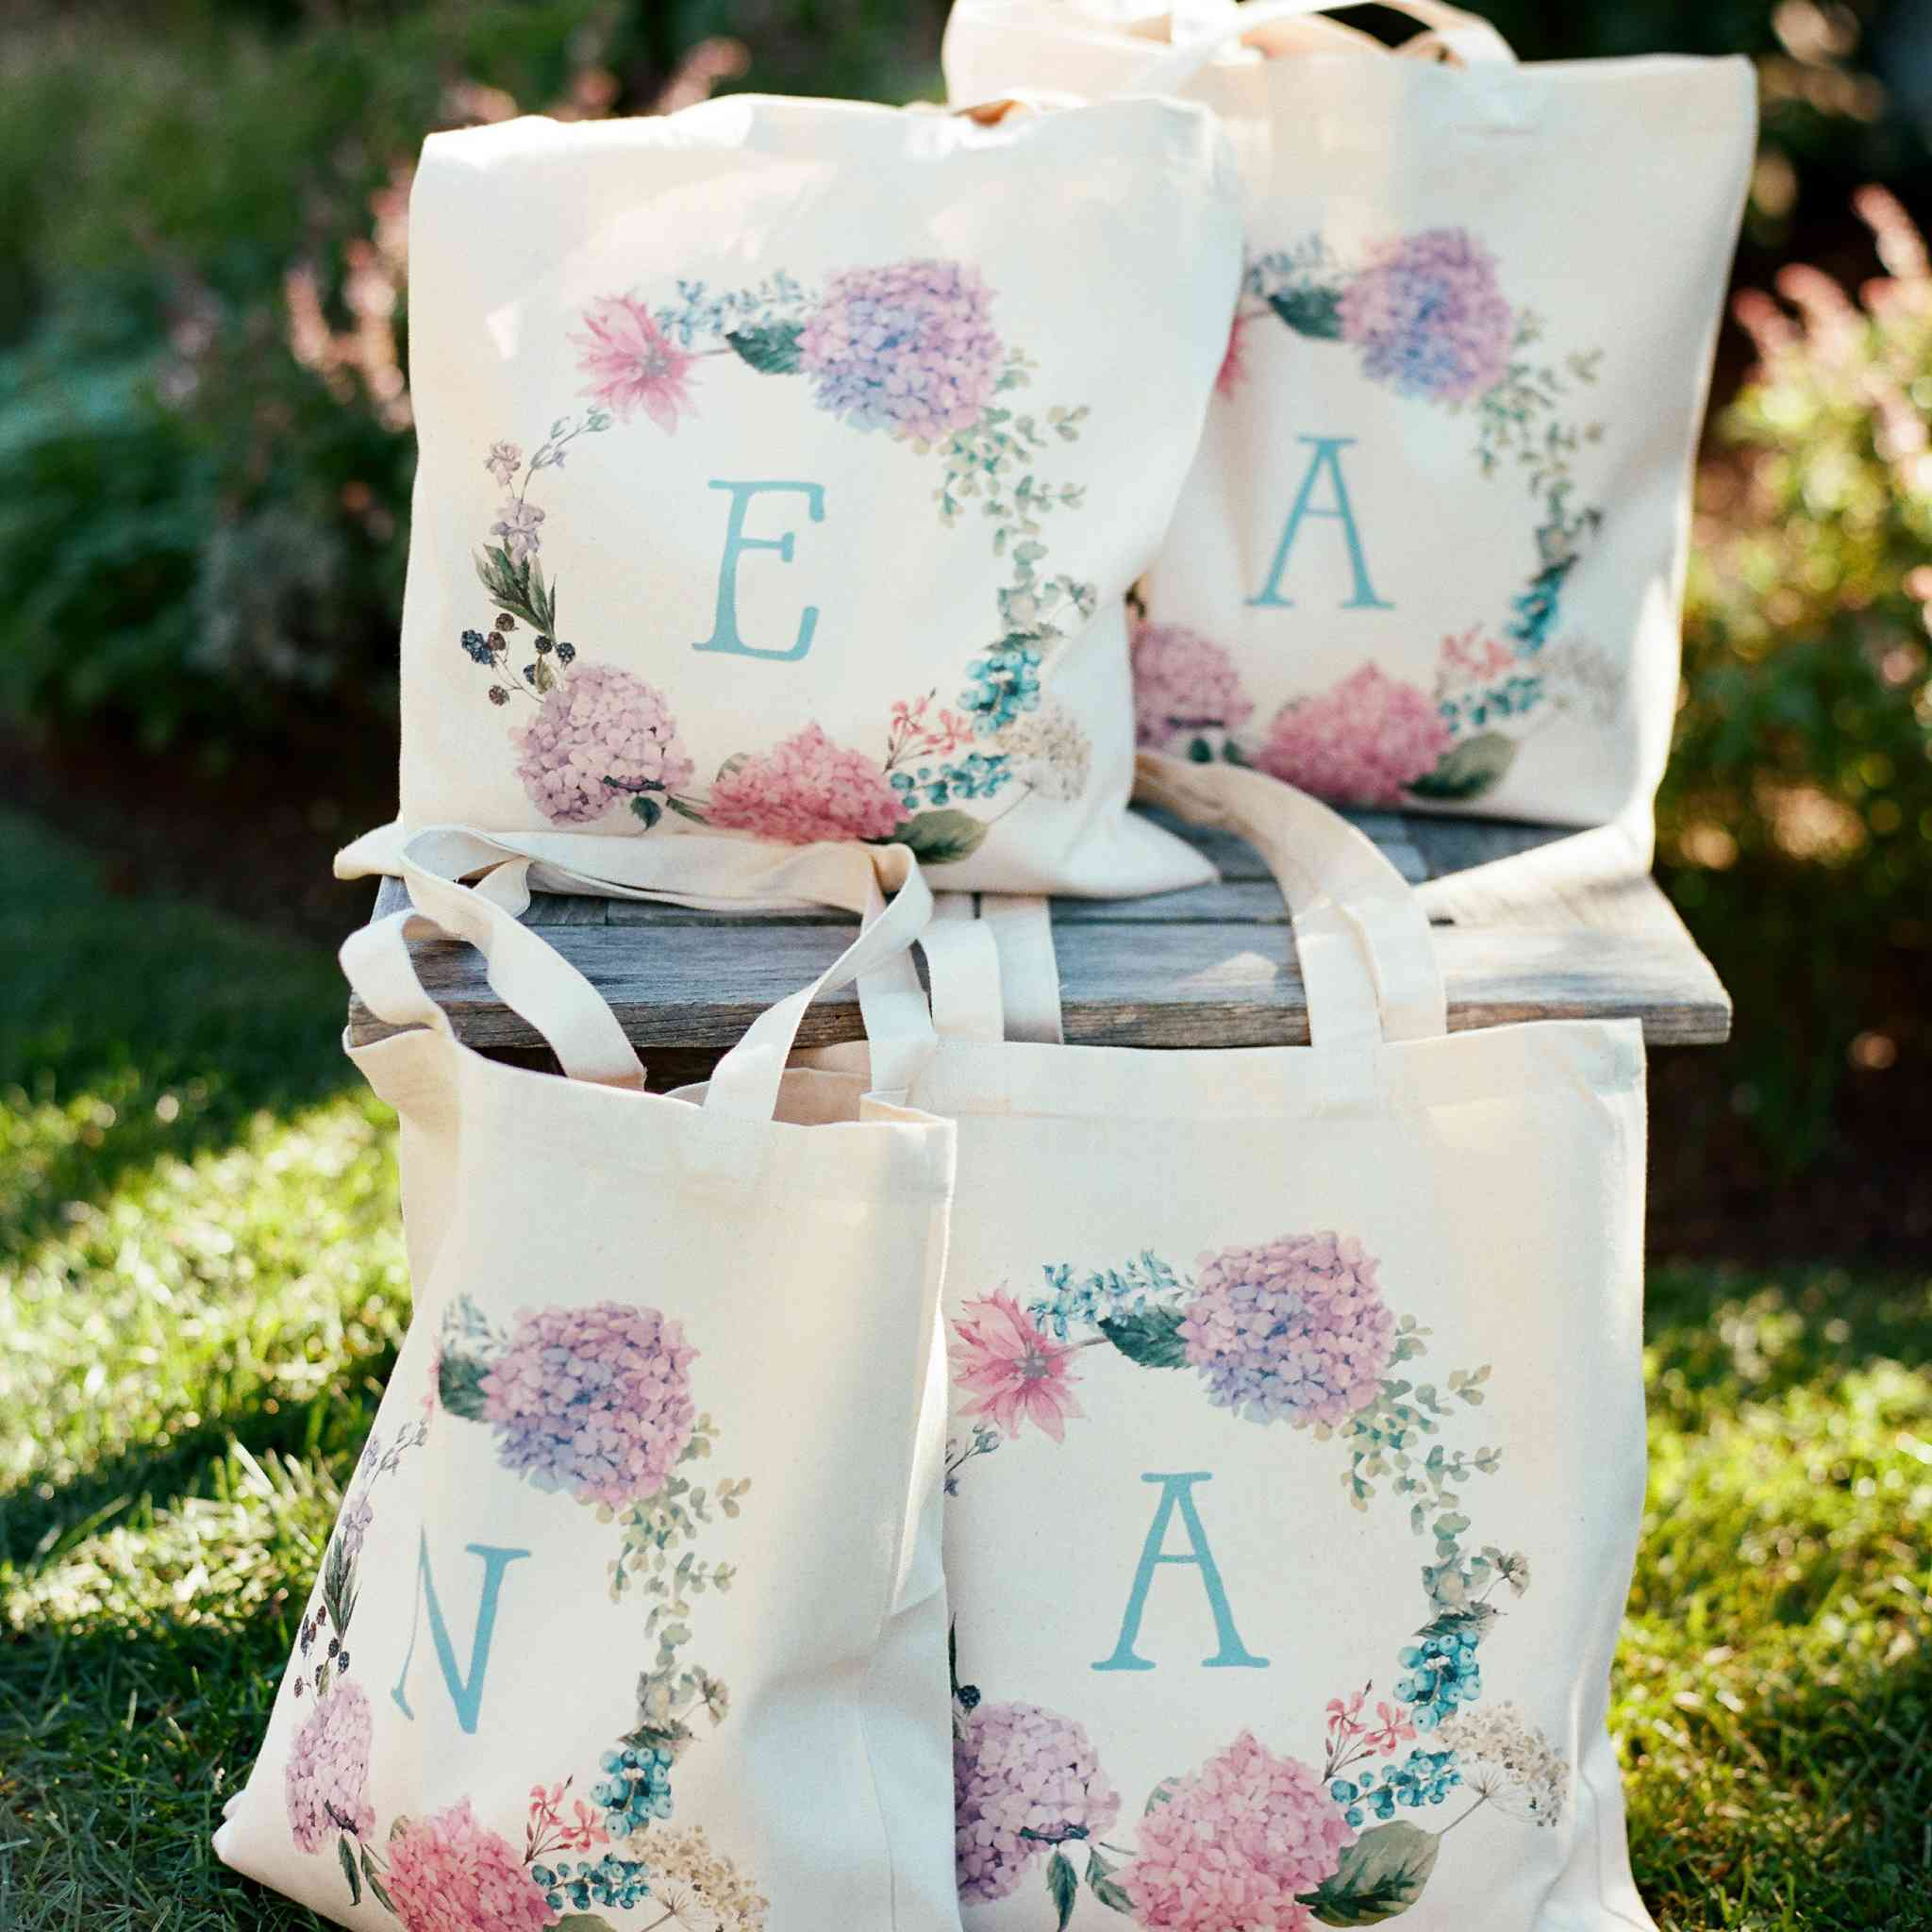 <p>Initial painted bridesmaids gifts</p><br><br>